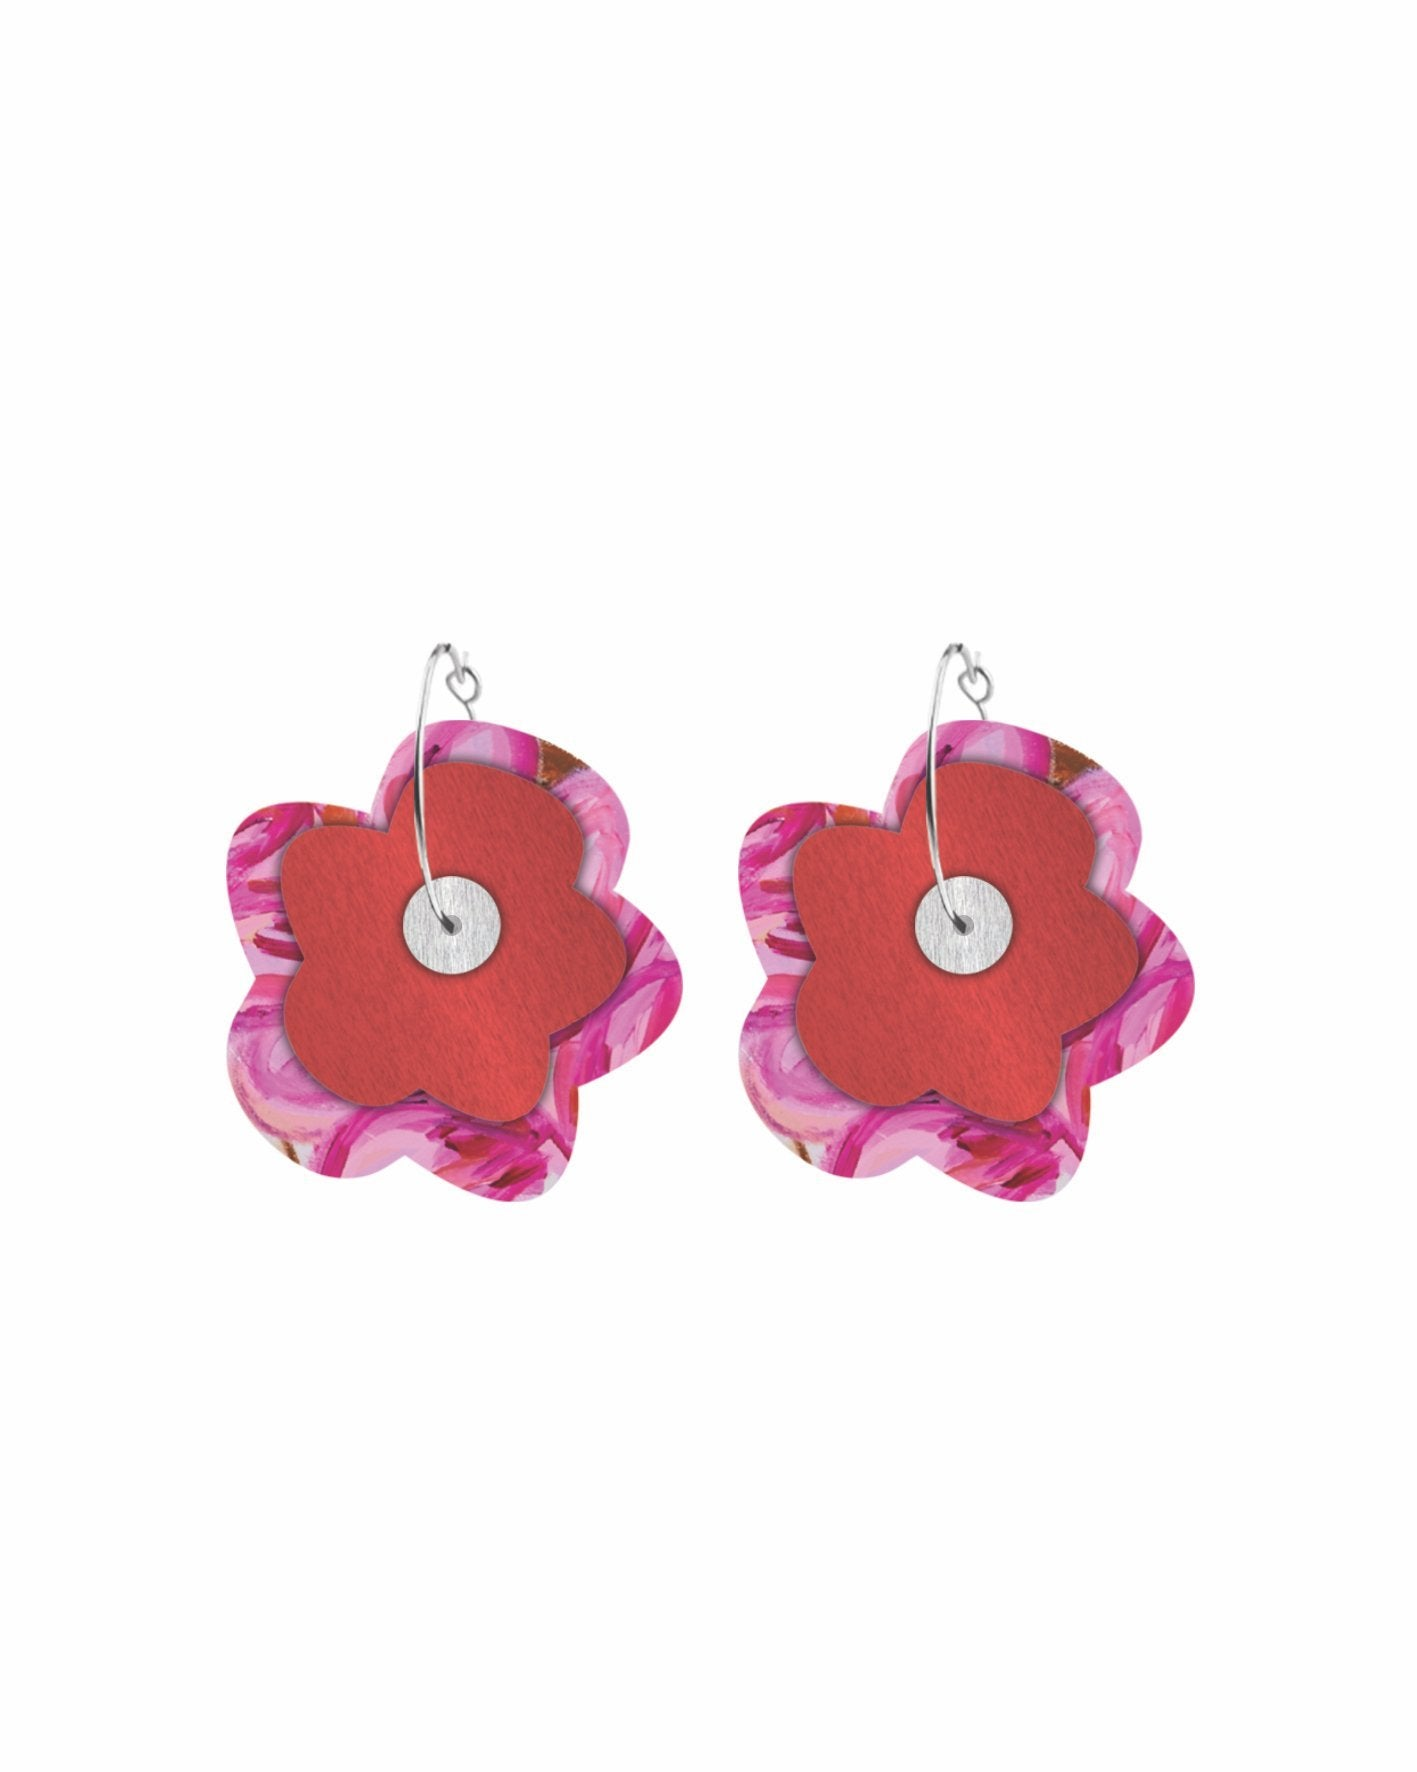 Flossy Kate Mayes Layered Big Flower Hoop Earrings